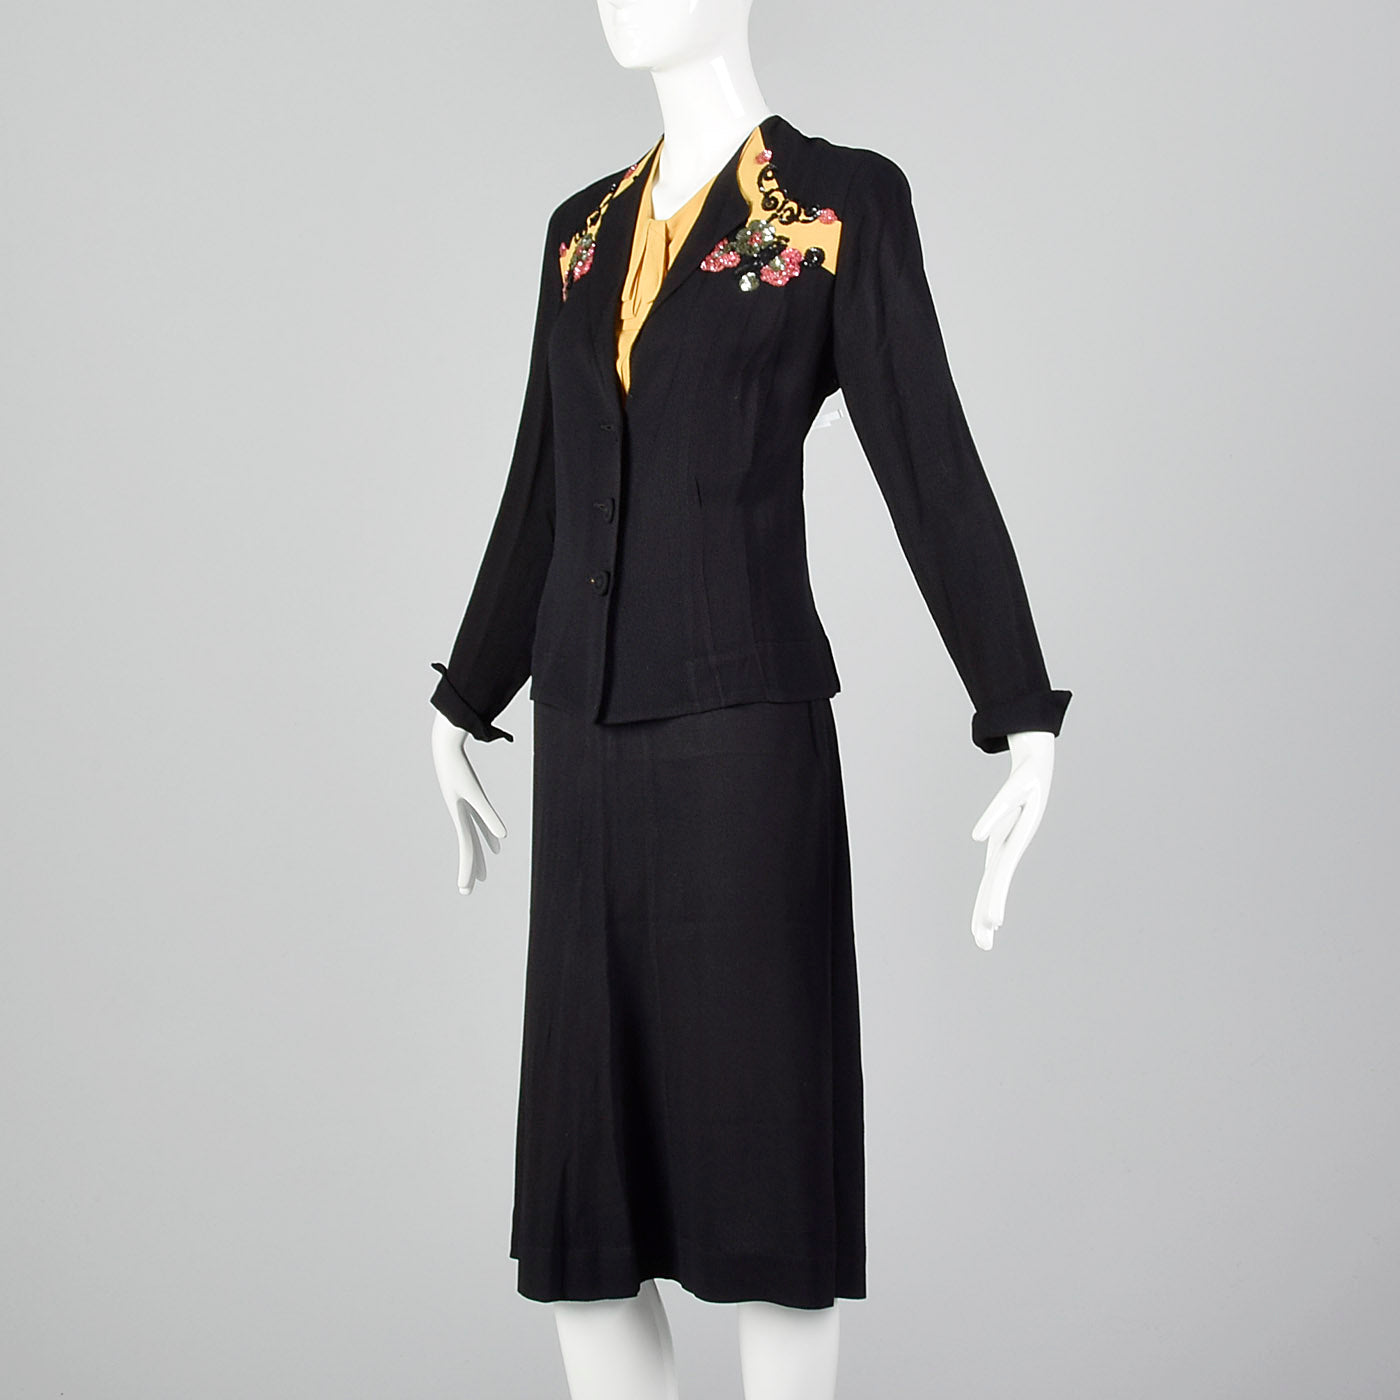 1940s Black Two Piece Set with Sequin Detail